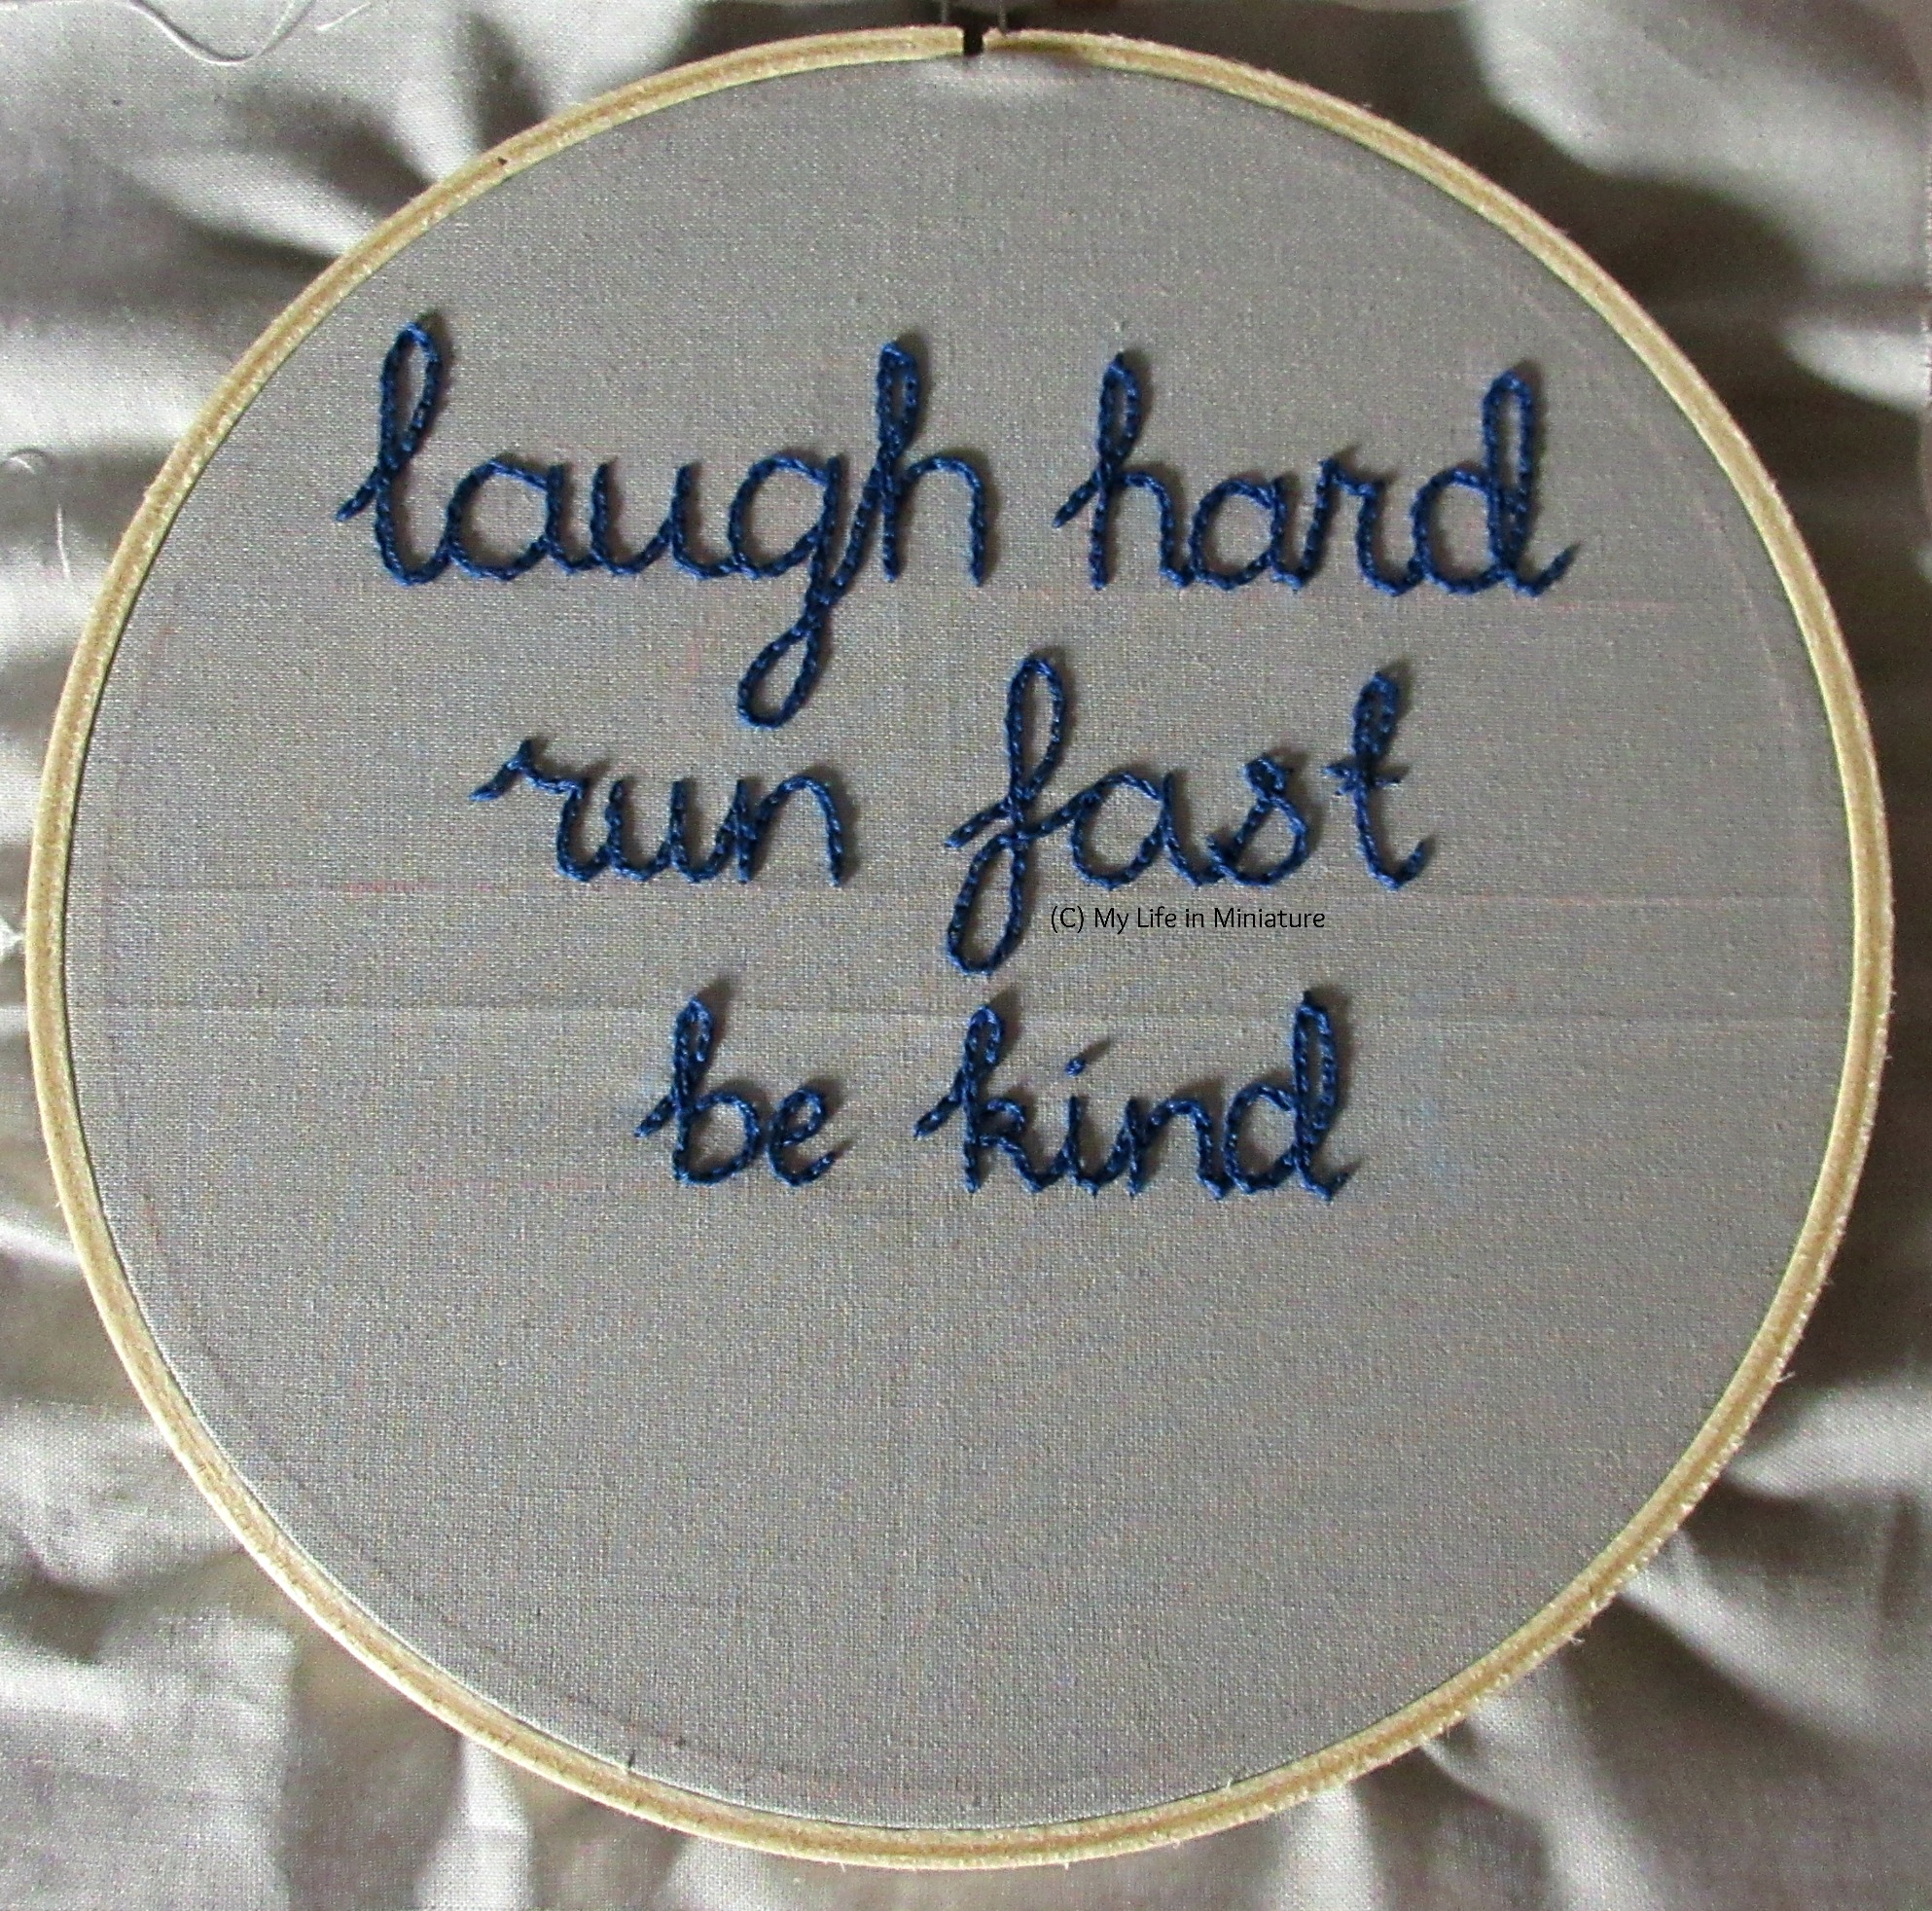 An embroidery hoop fills the image, strung with grey fabric. The phrase 'laugh hard; run fast; be kind' is stitched across the top two-thirds in dark blue chain stitch.